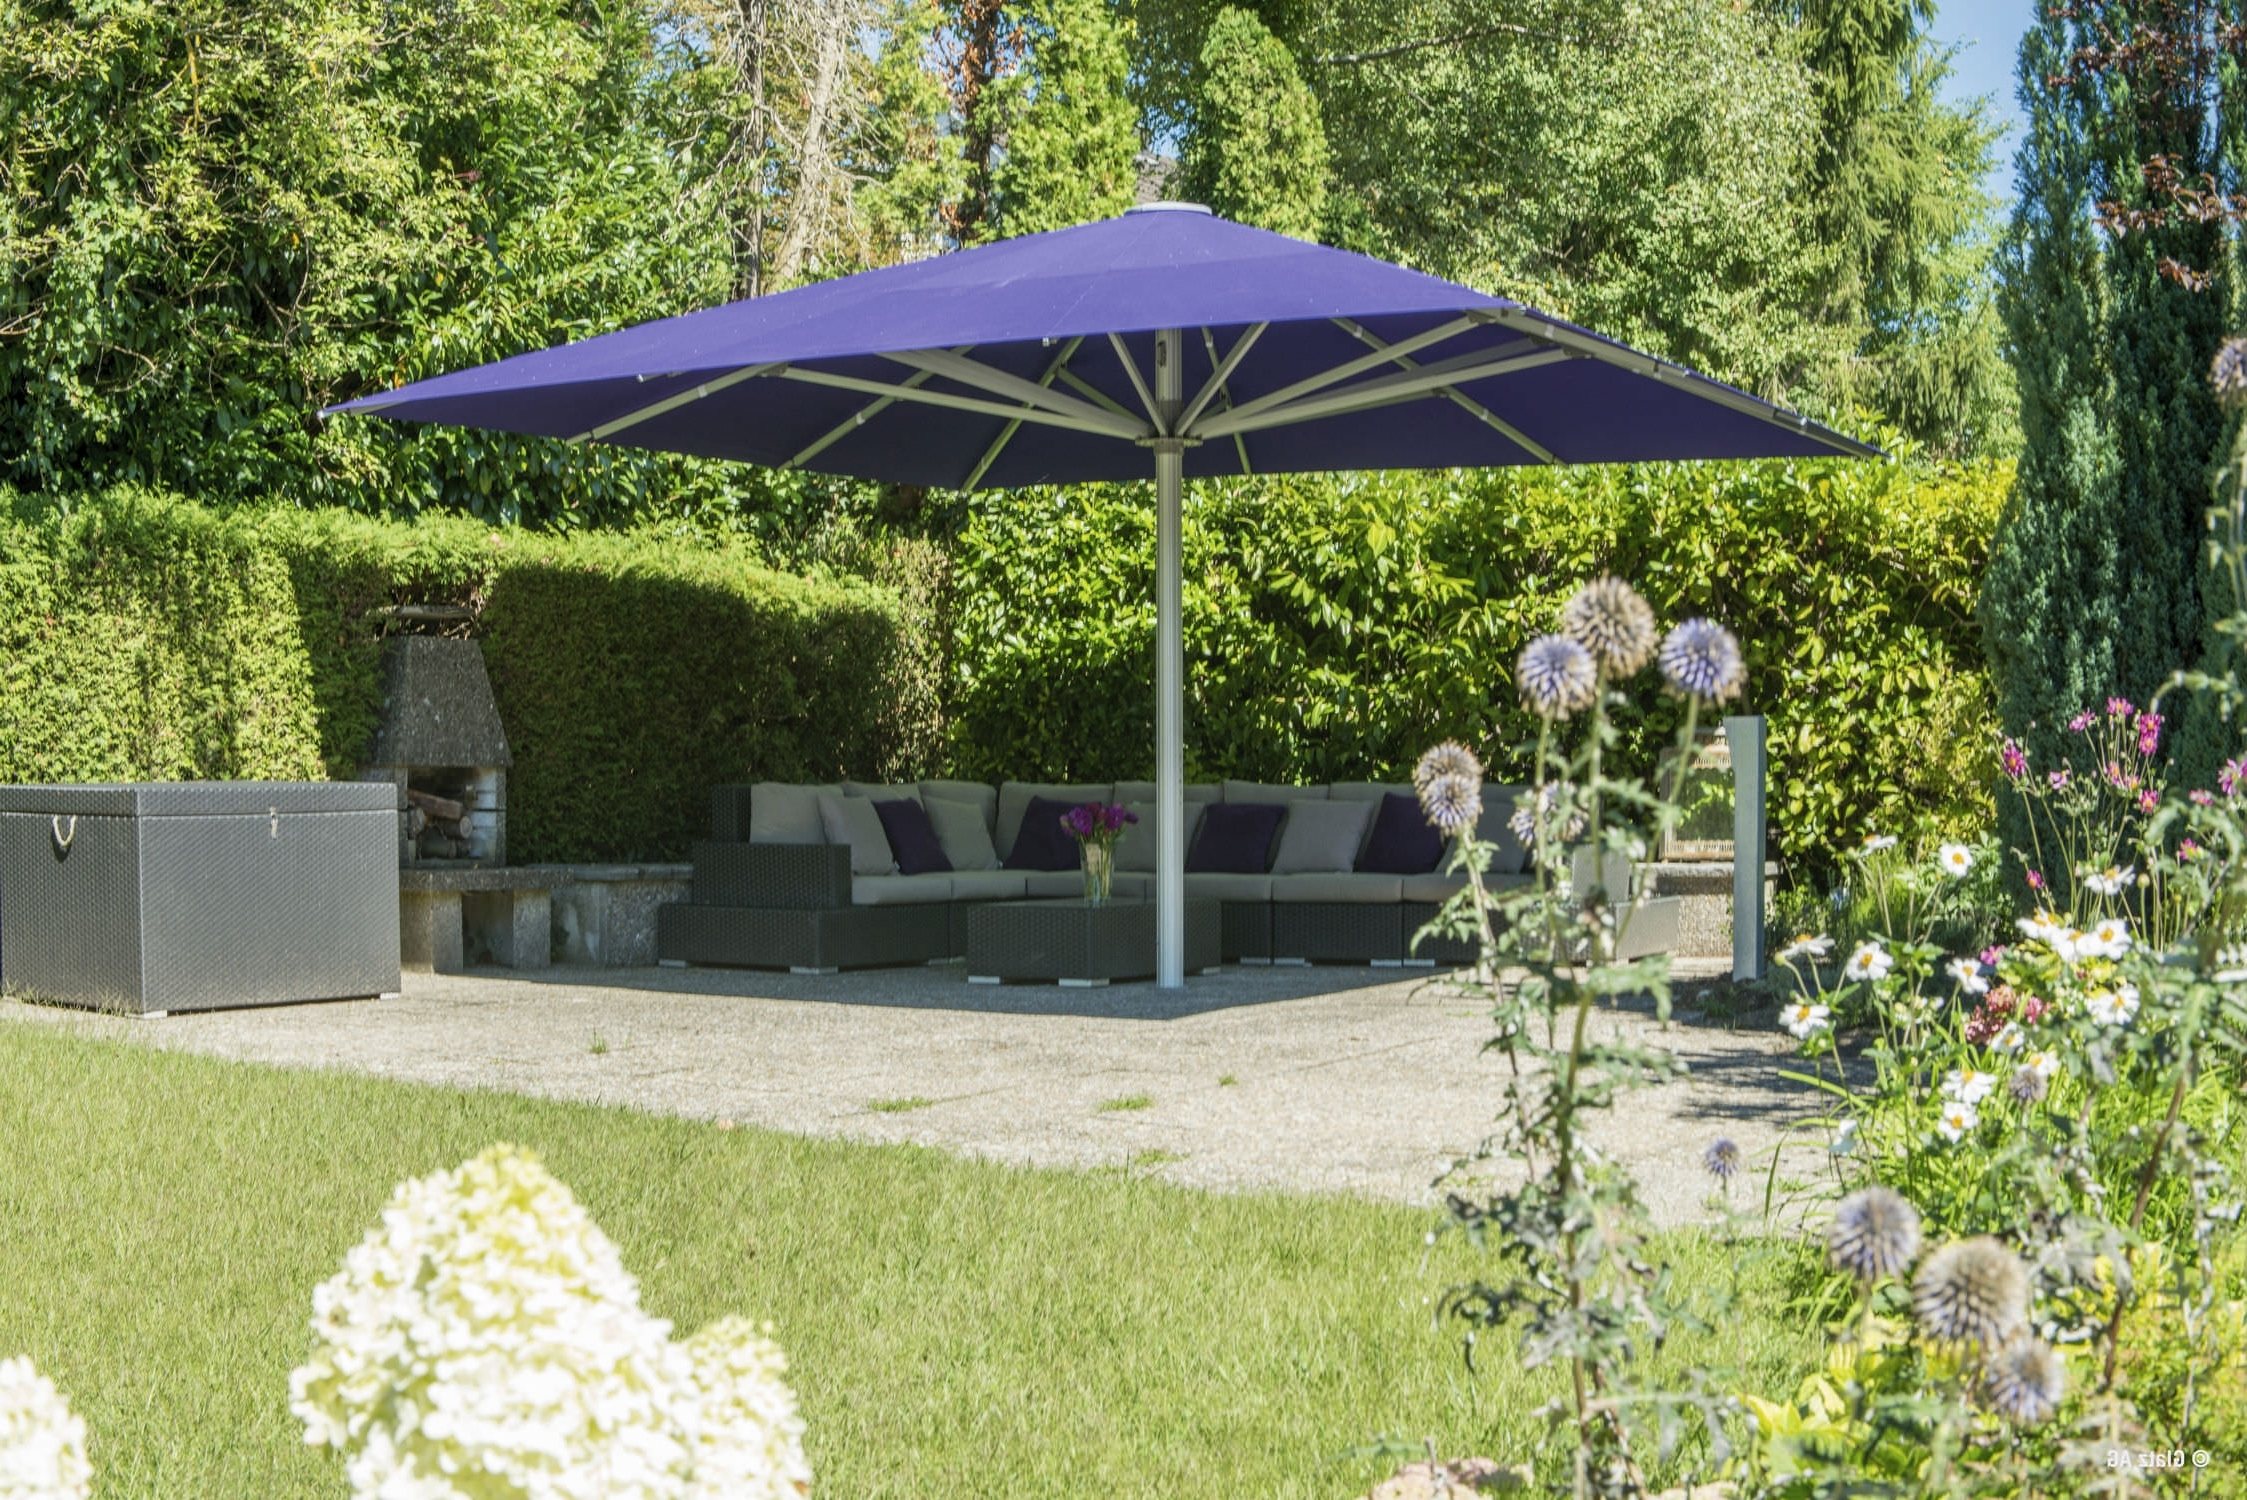 High Wind Patio Umbrellas • Patio Ideas Pertaining To Popular Commercial Patio Umbrellas (Gallery 8 of 20)